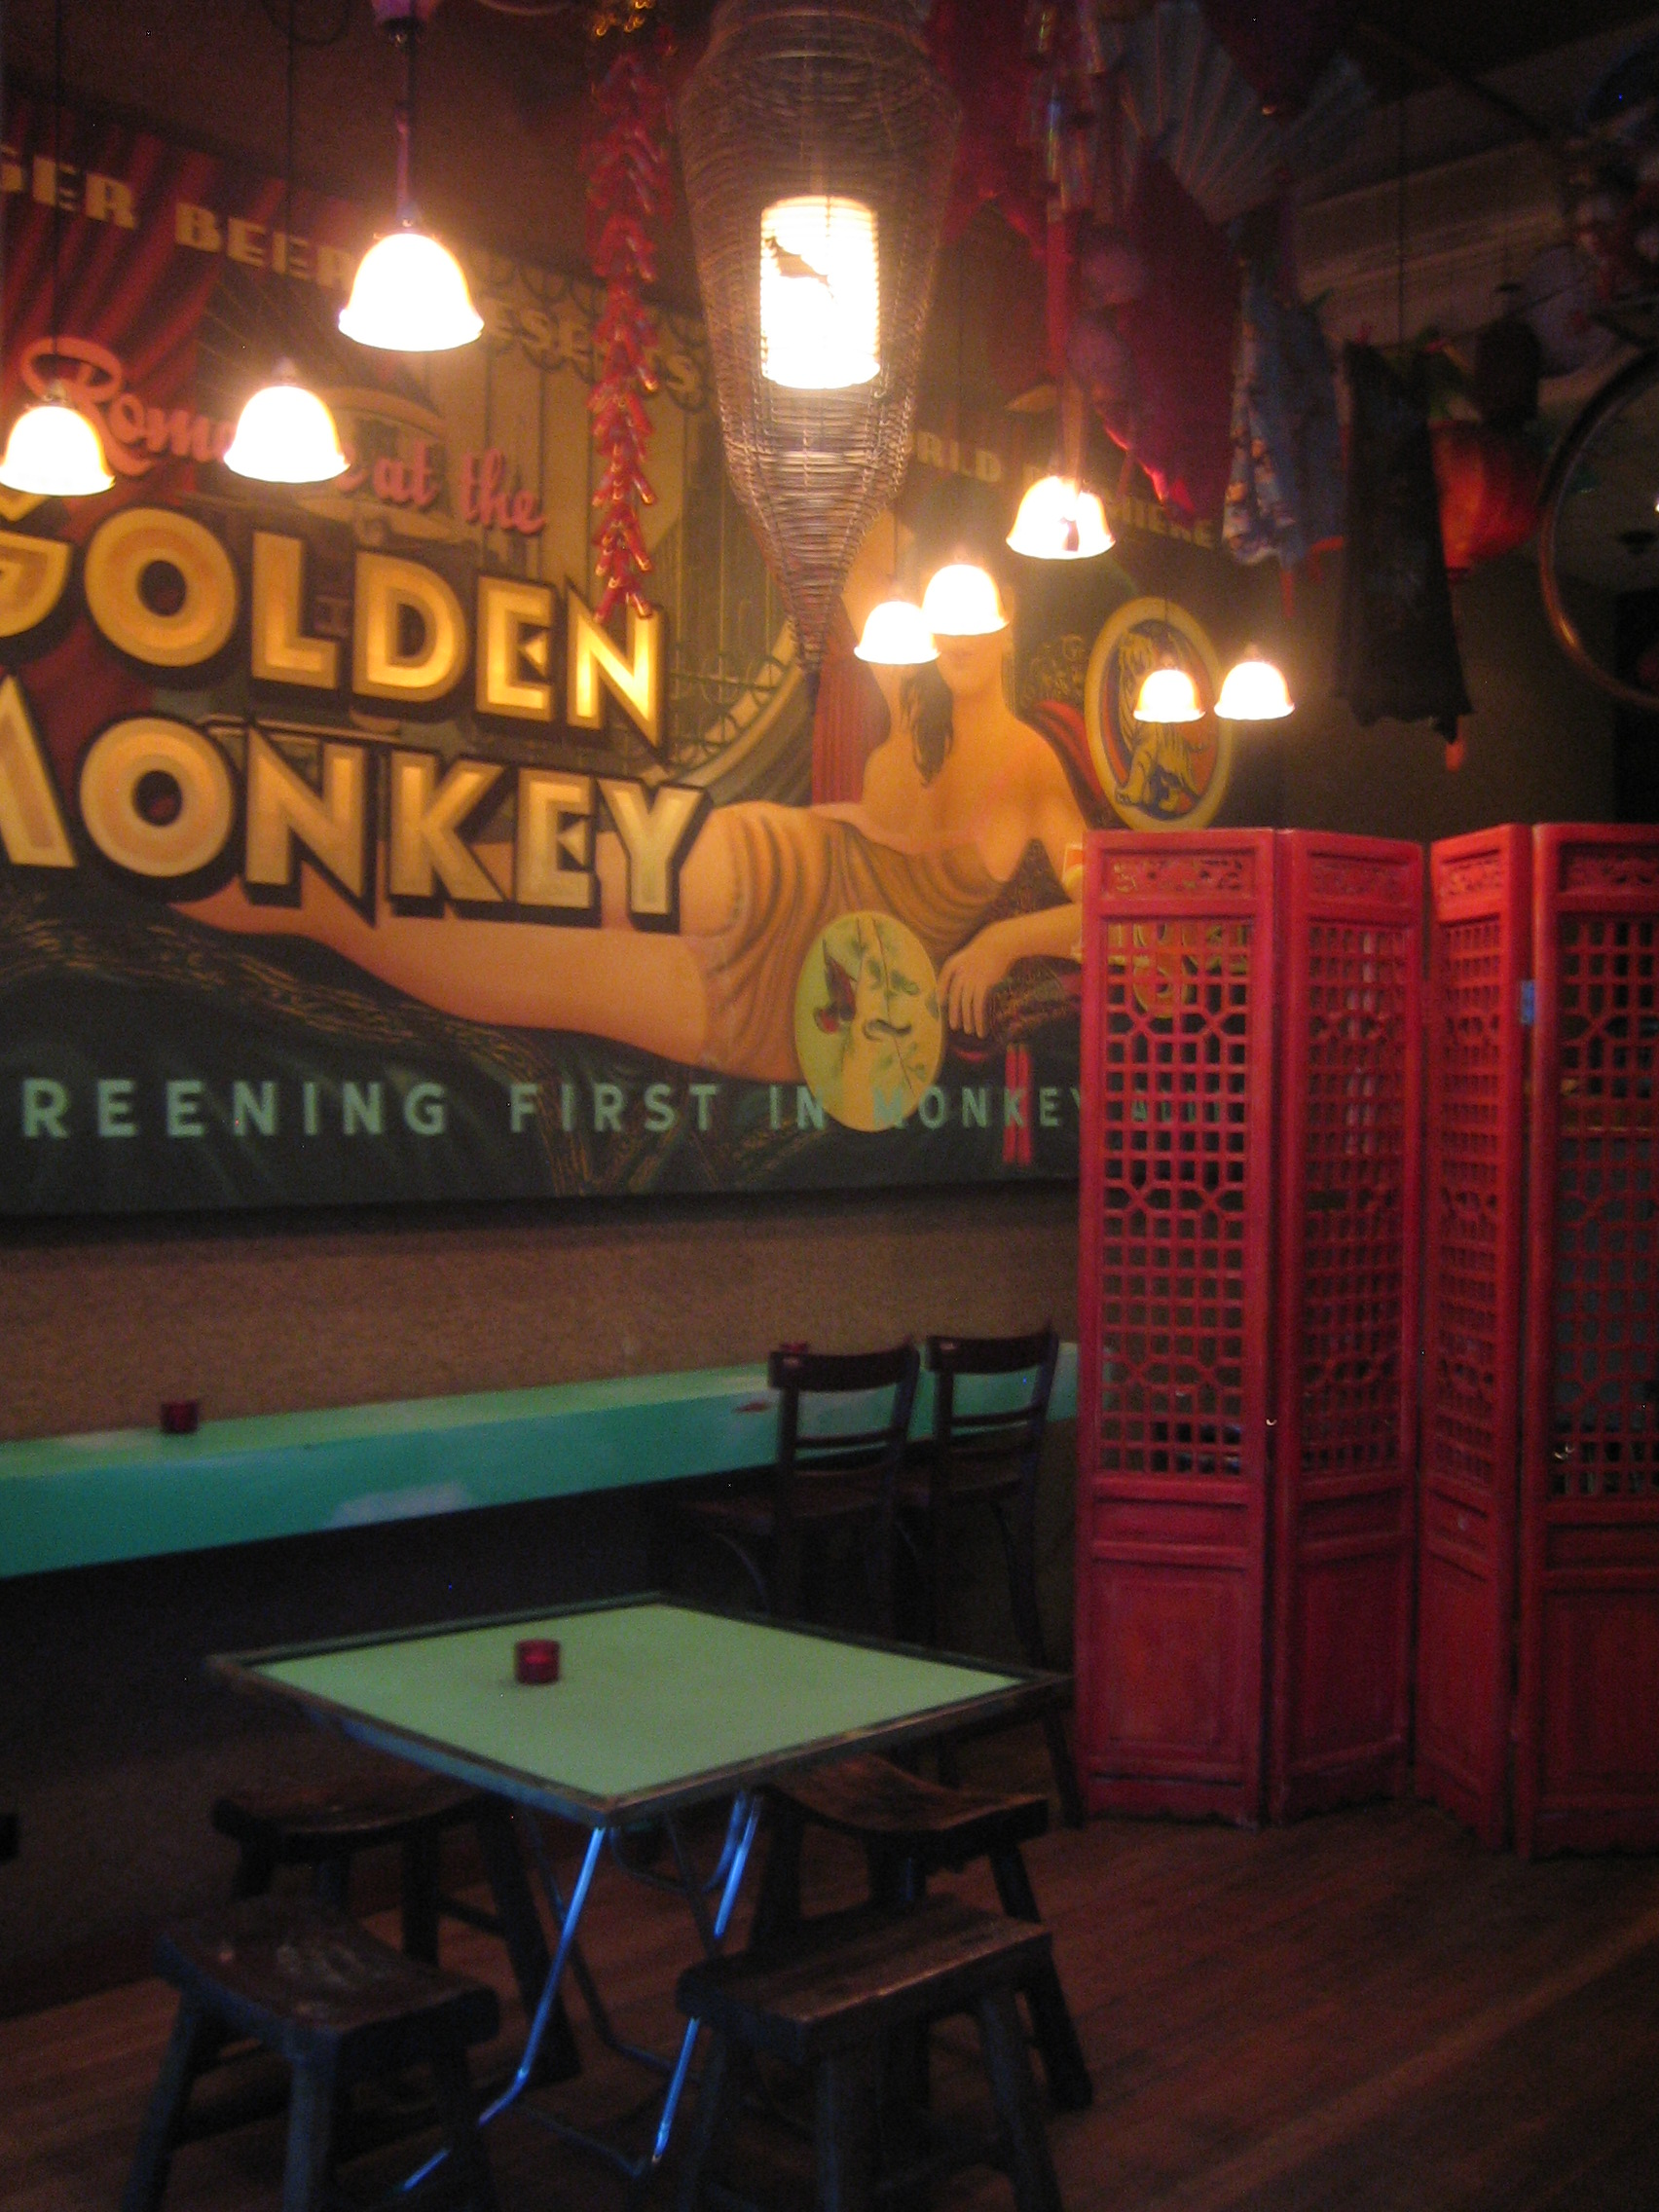 Golden Monkey Melb